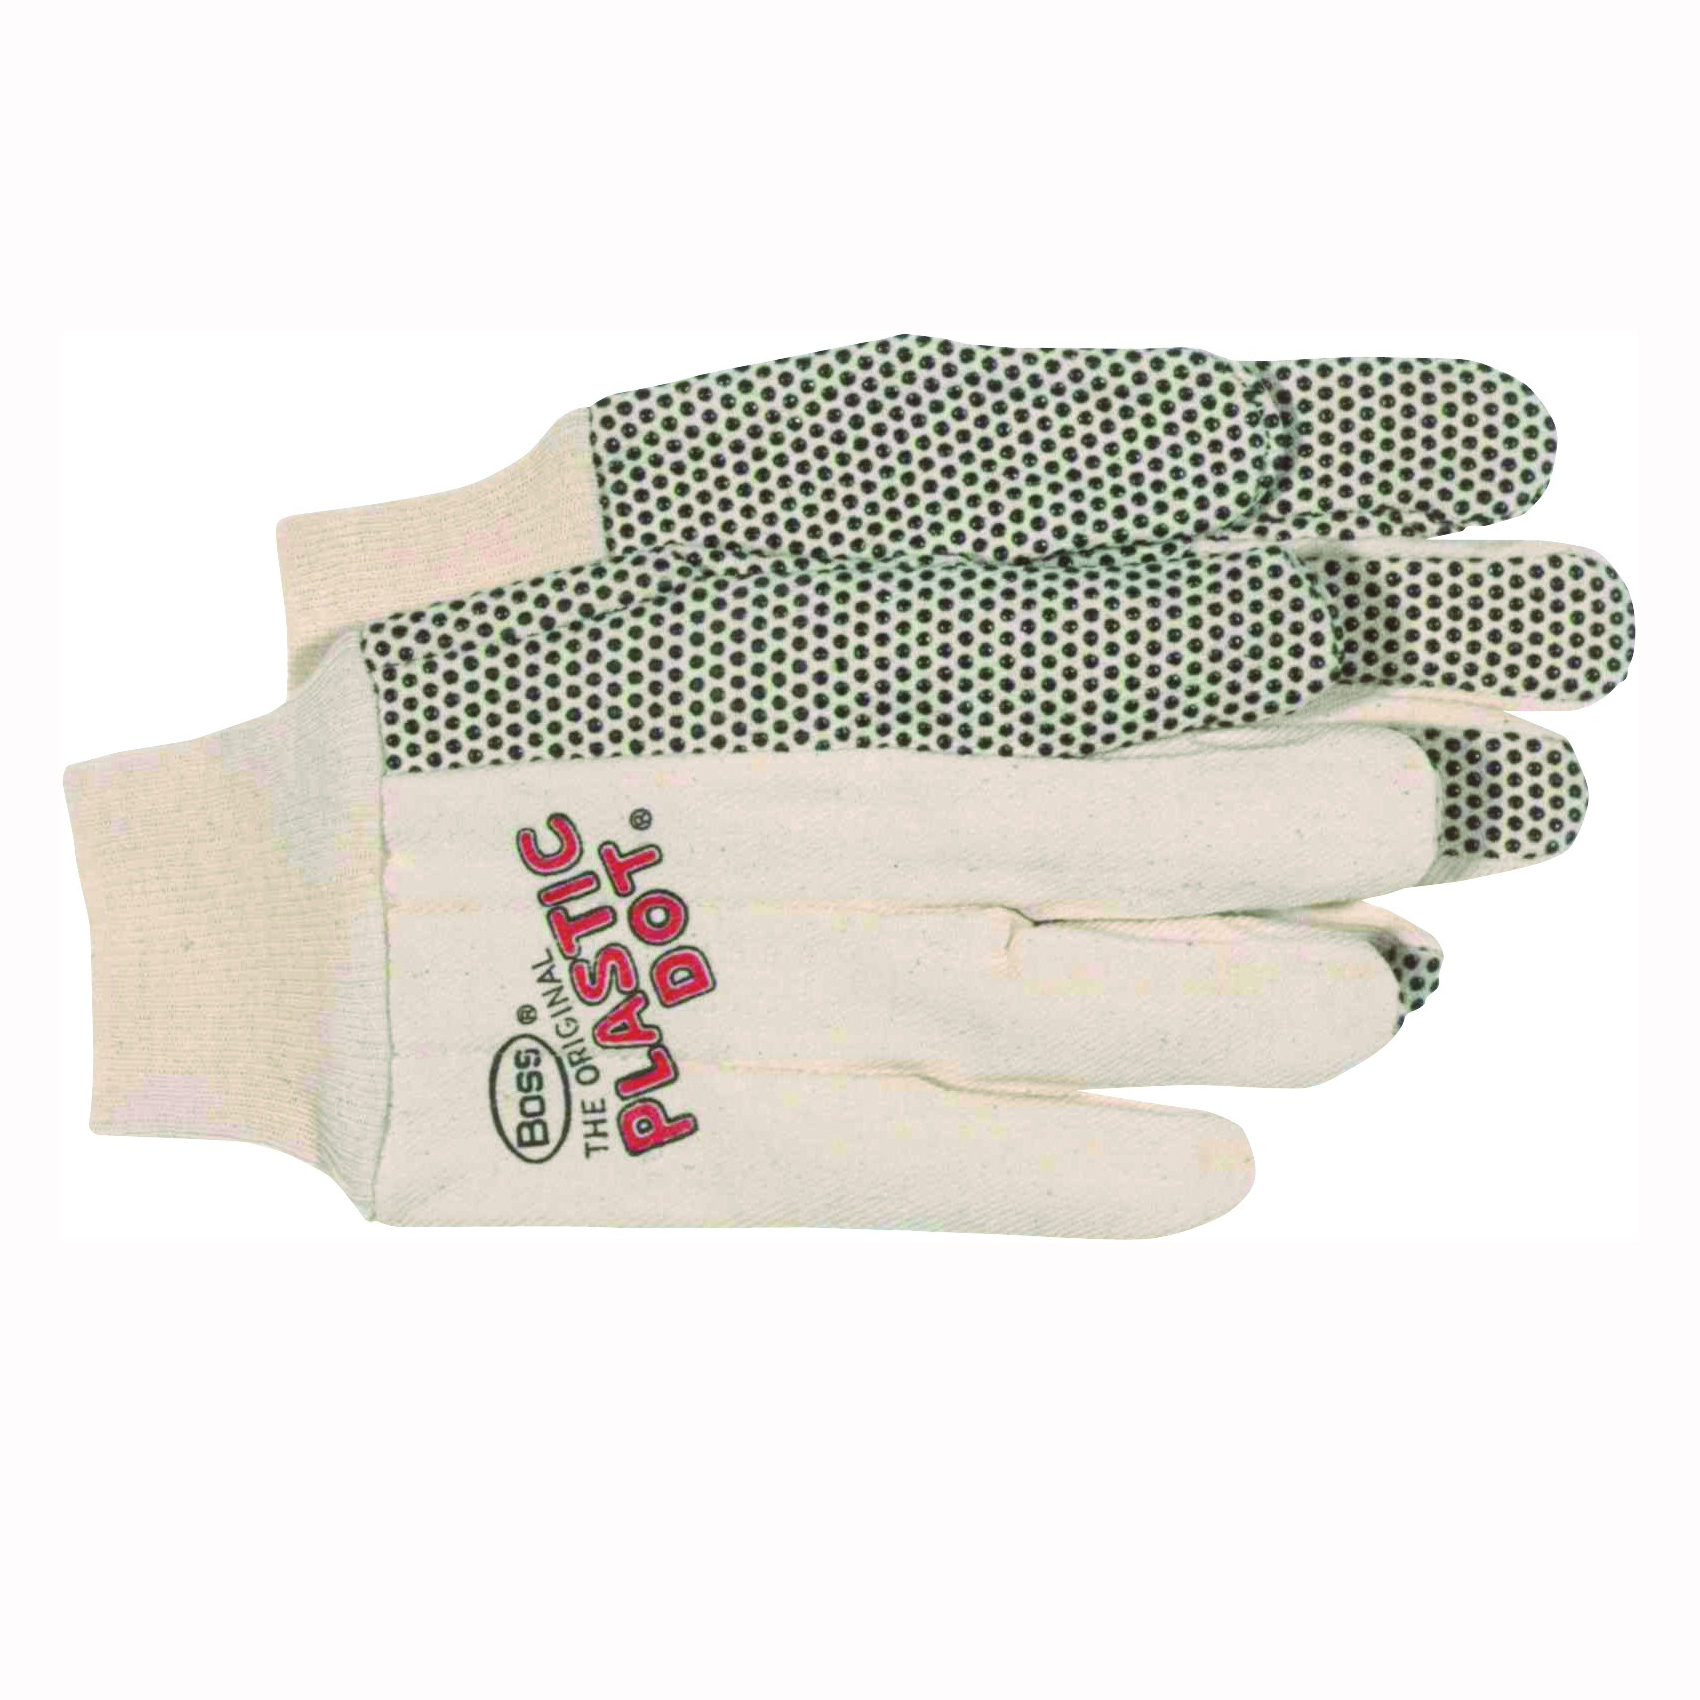 Picture of BOSS 5501 General-Purpose Protective Gloves, Men's, L, Straight Thumb, Knit Wrist Cuff, Cotton, Black/White